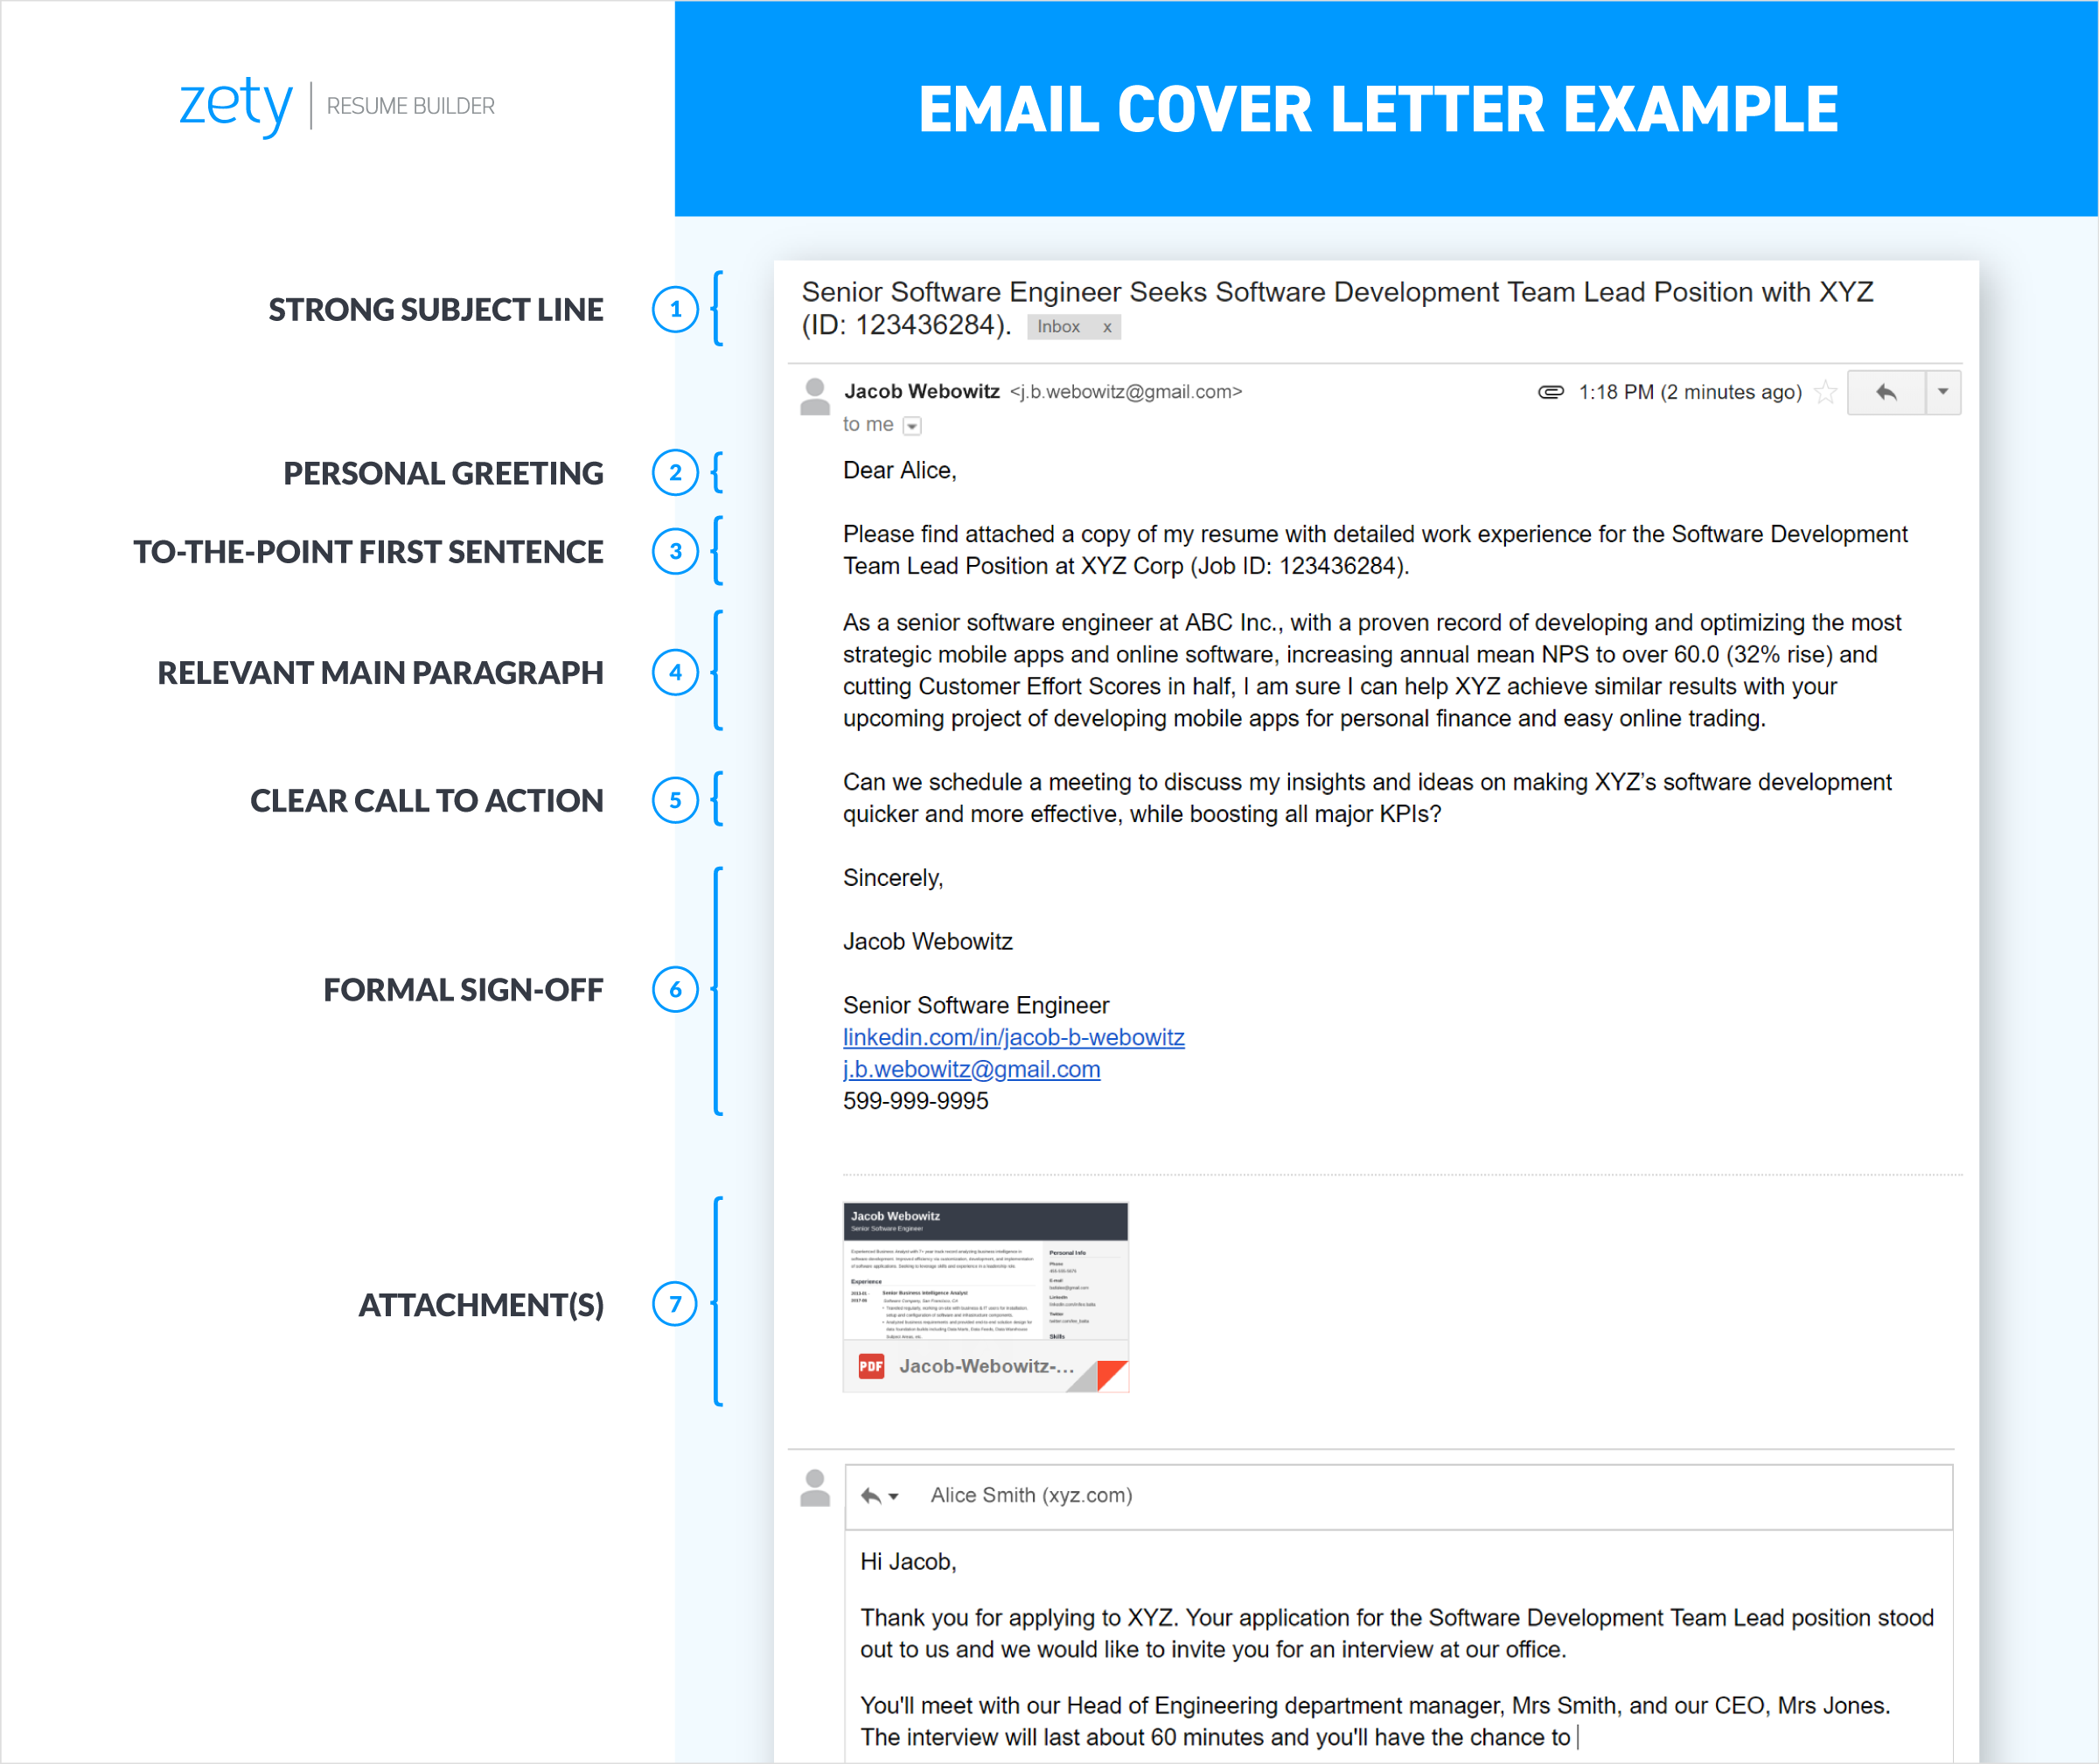 Cover Letter Email Example from cdn-images.zety.com